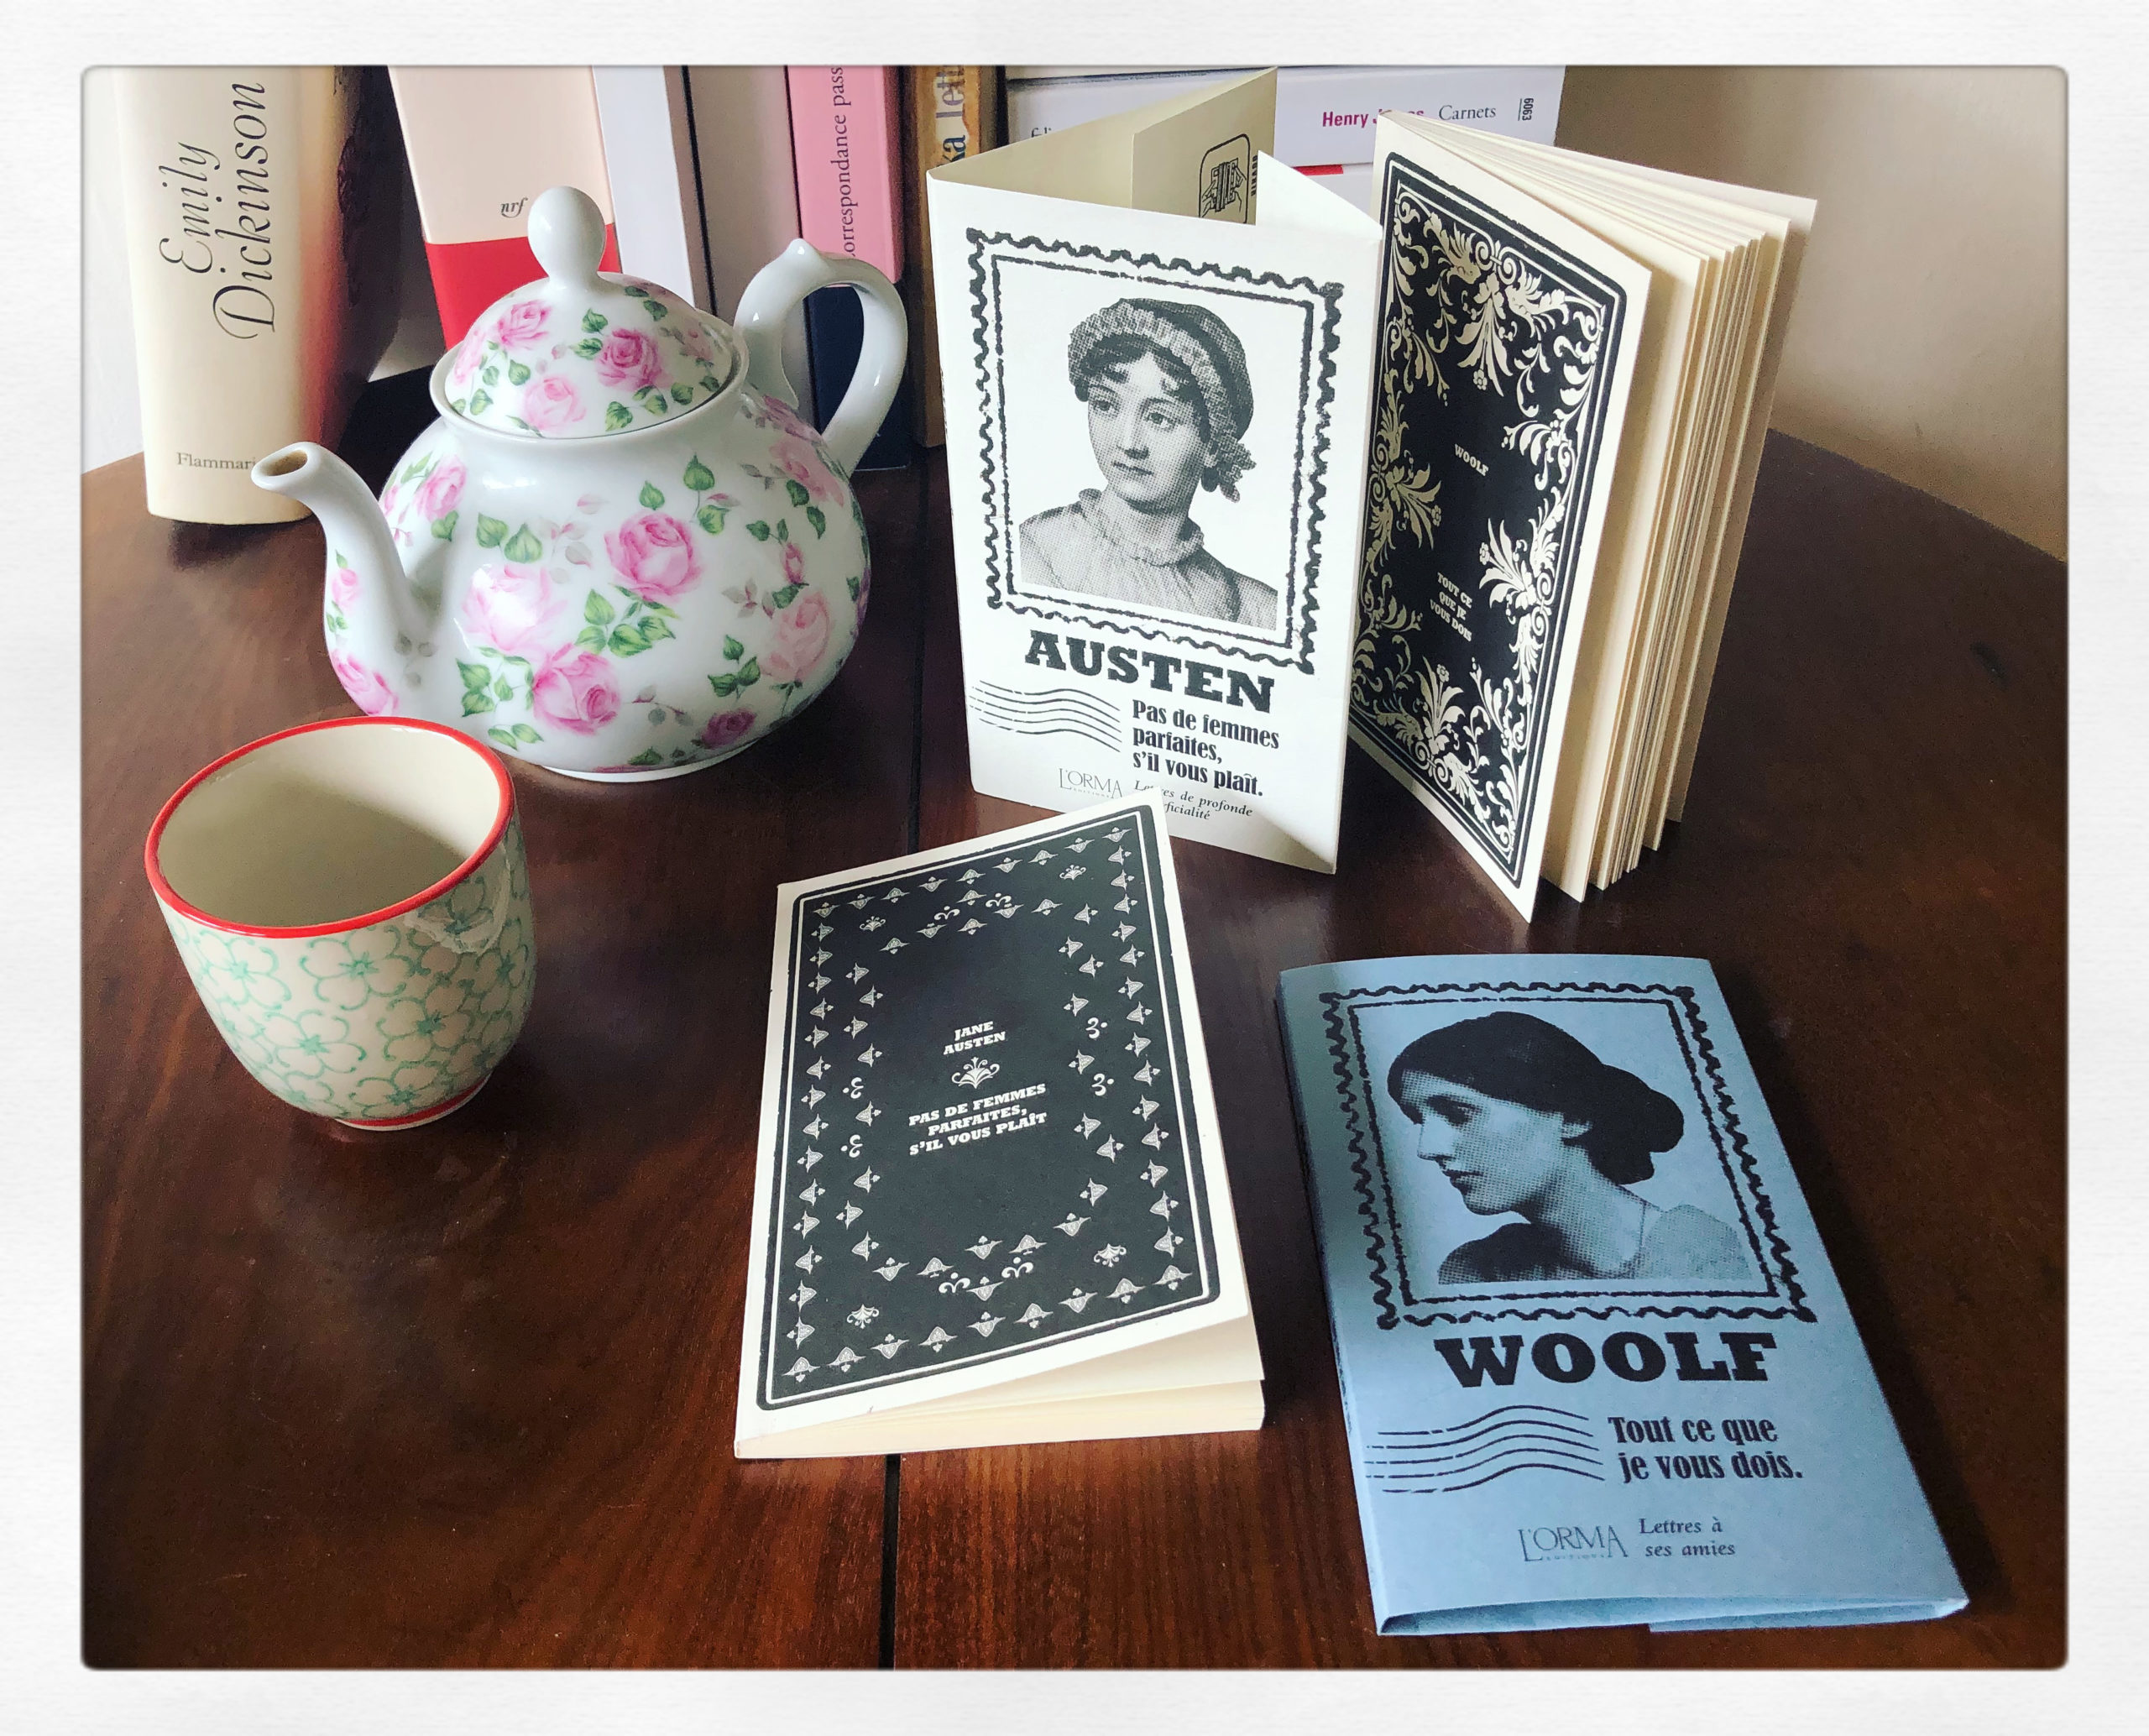 Jane Austen, Virginia Woolf & les éditions L'Orma...